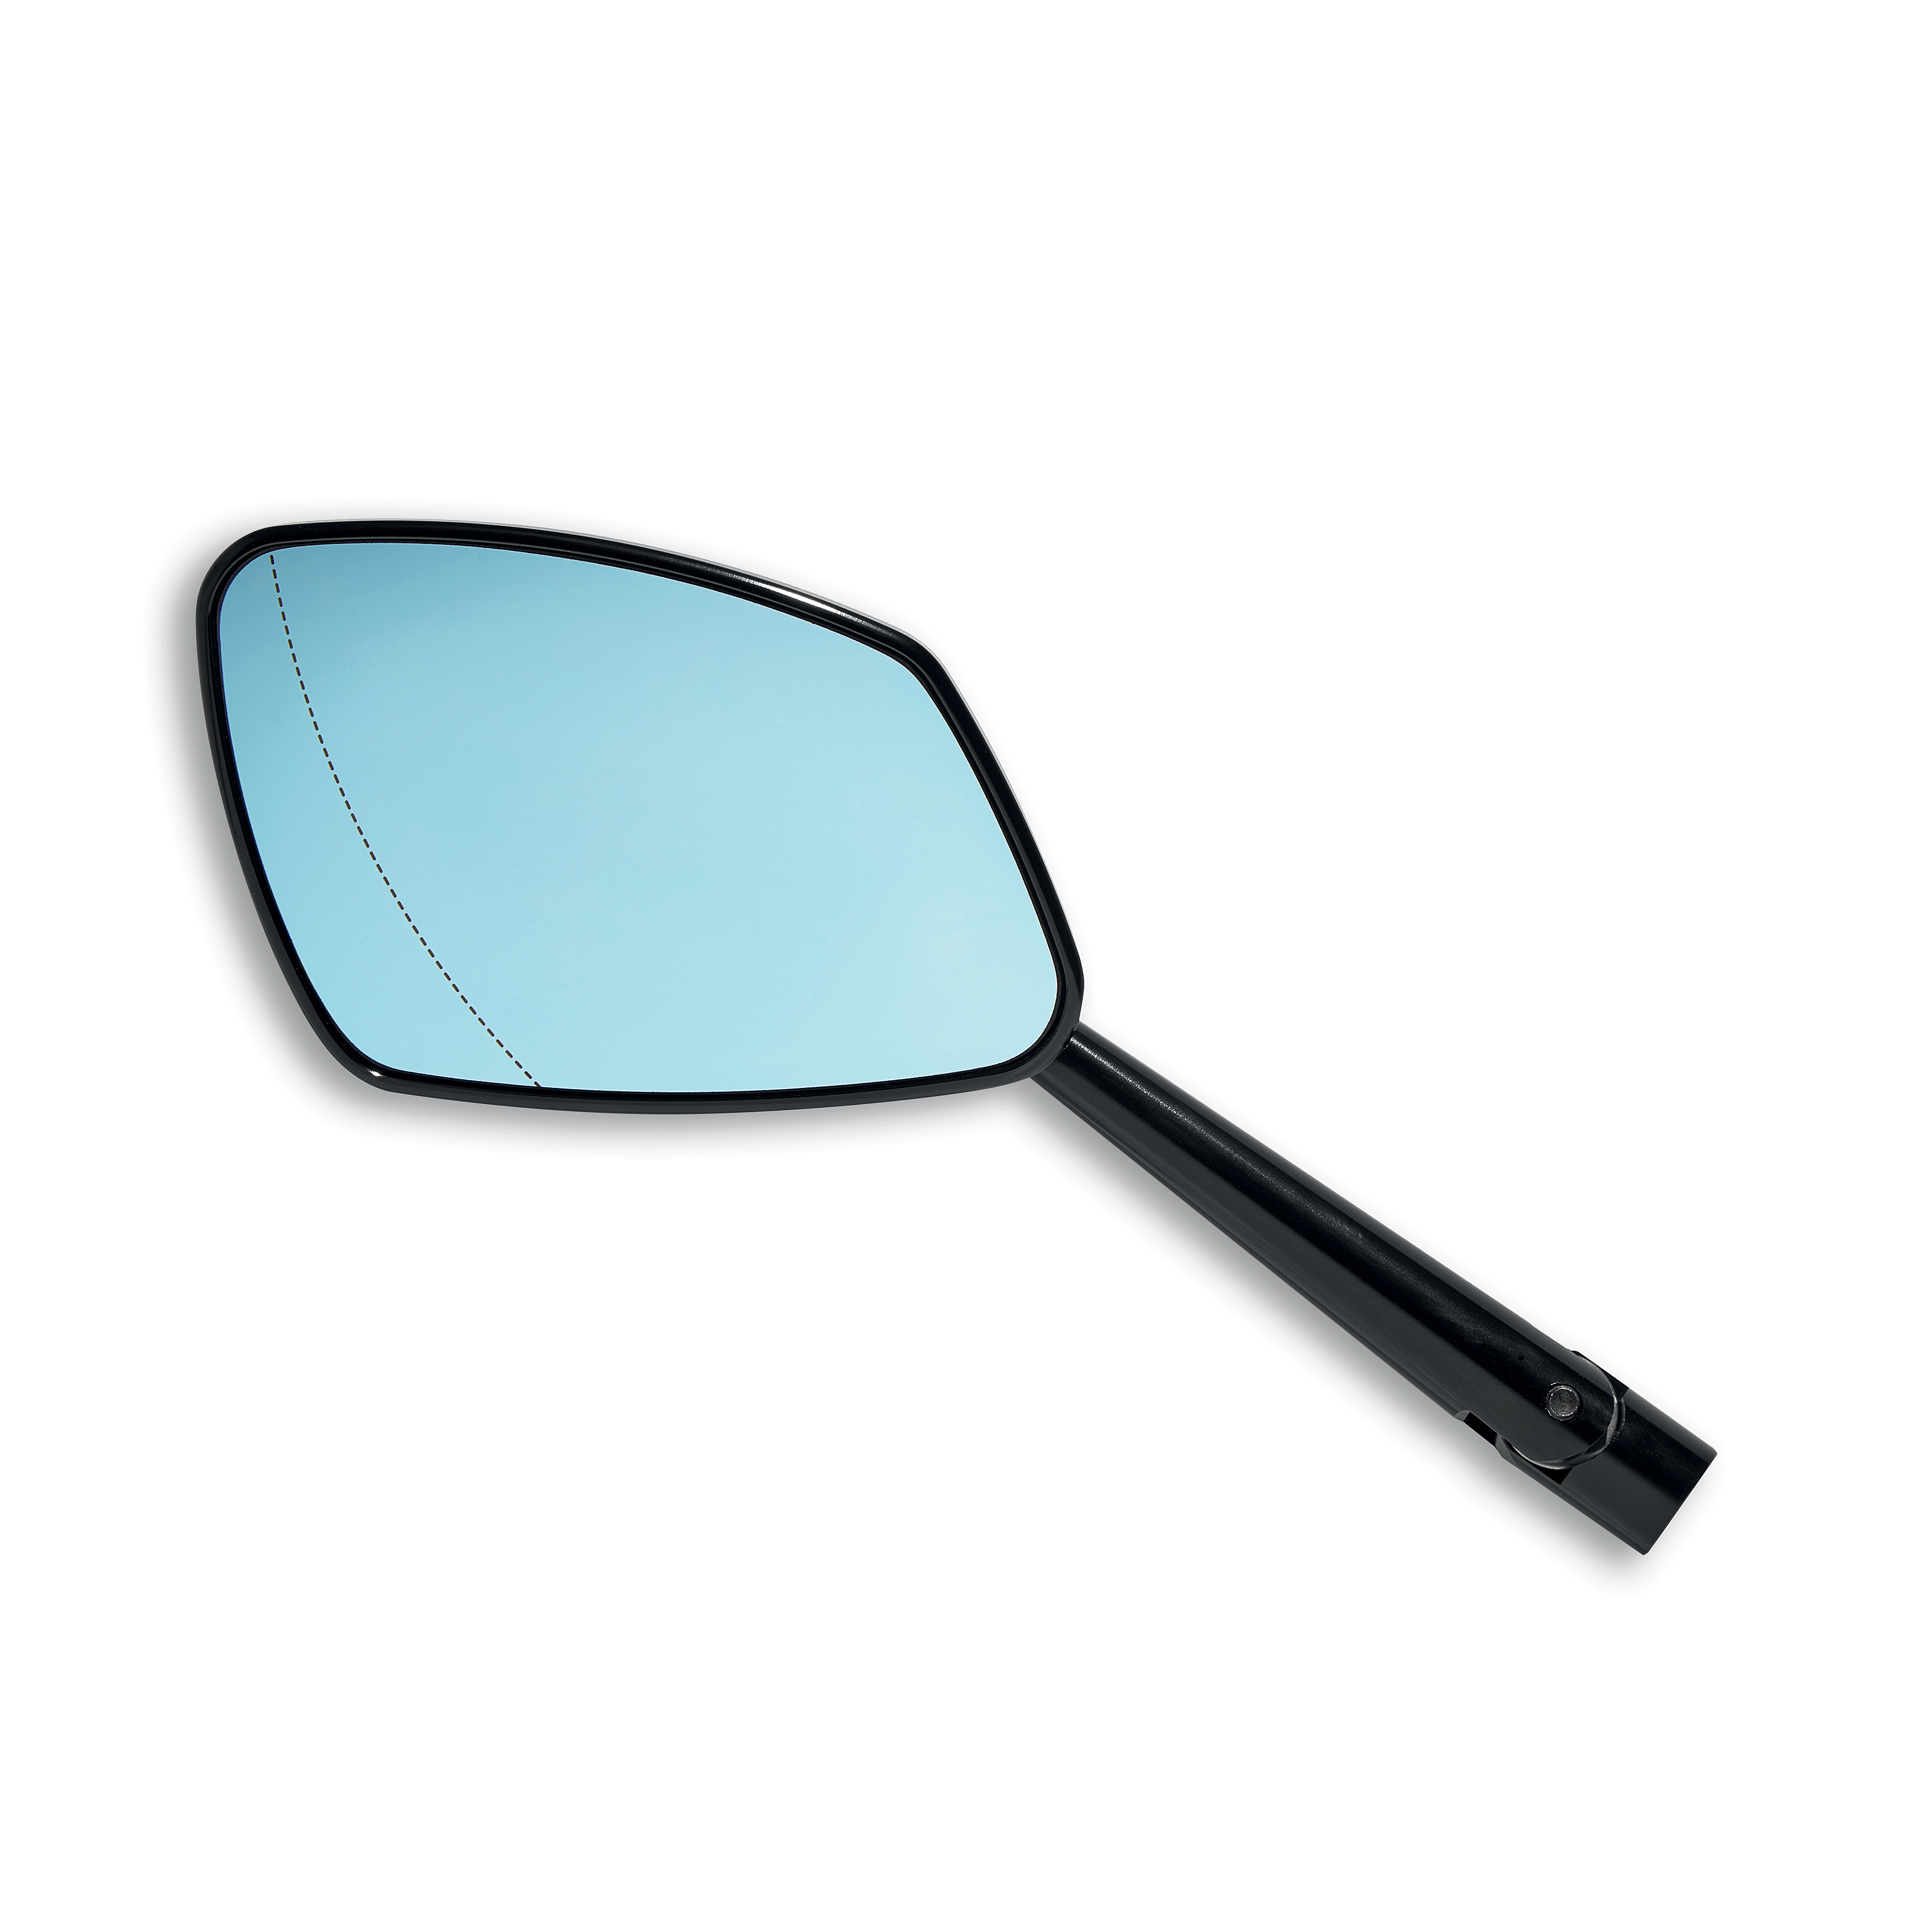 Black LH aluminium rear-view mirror.